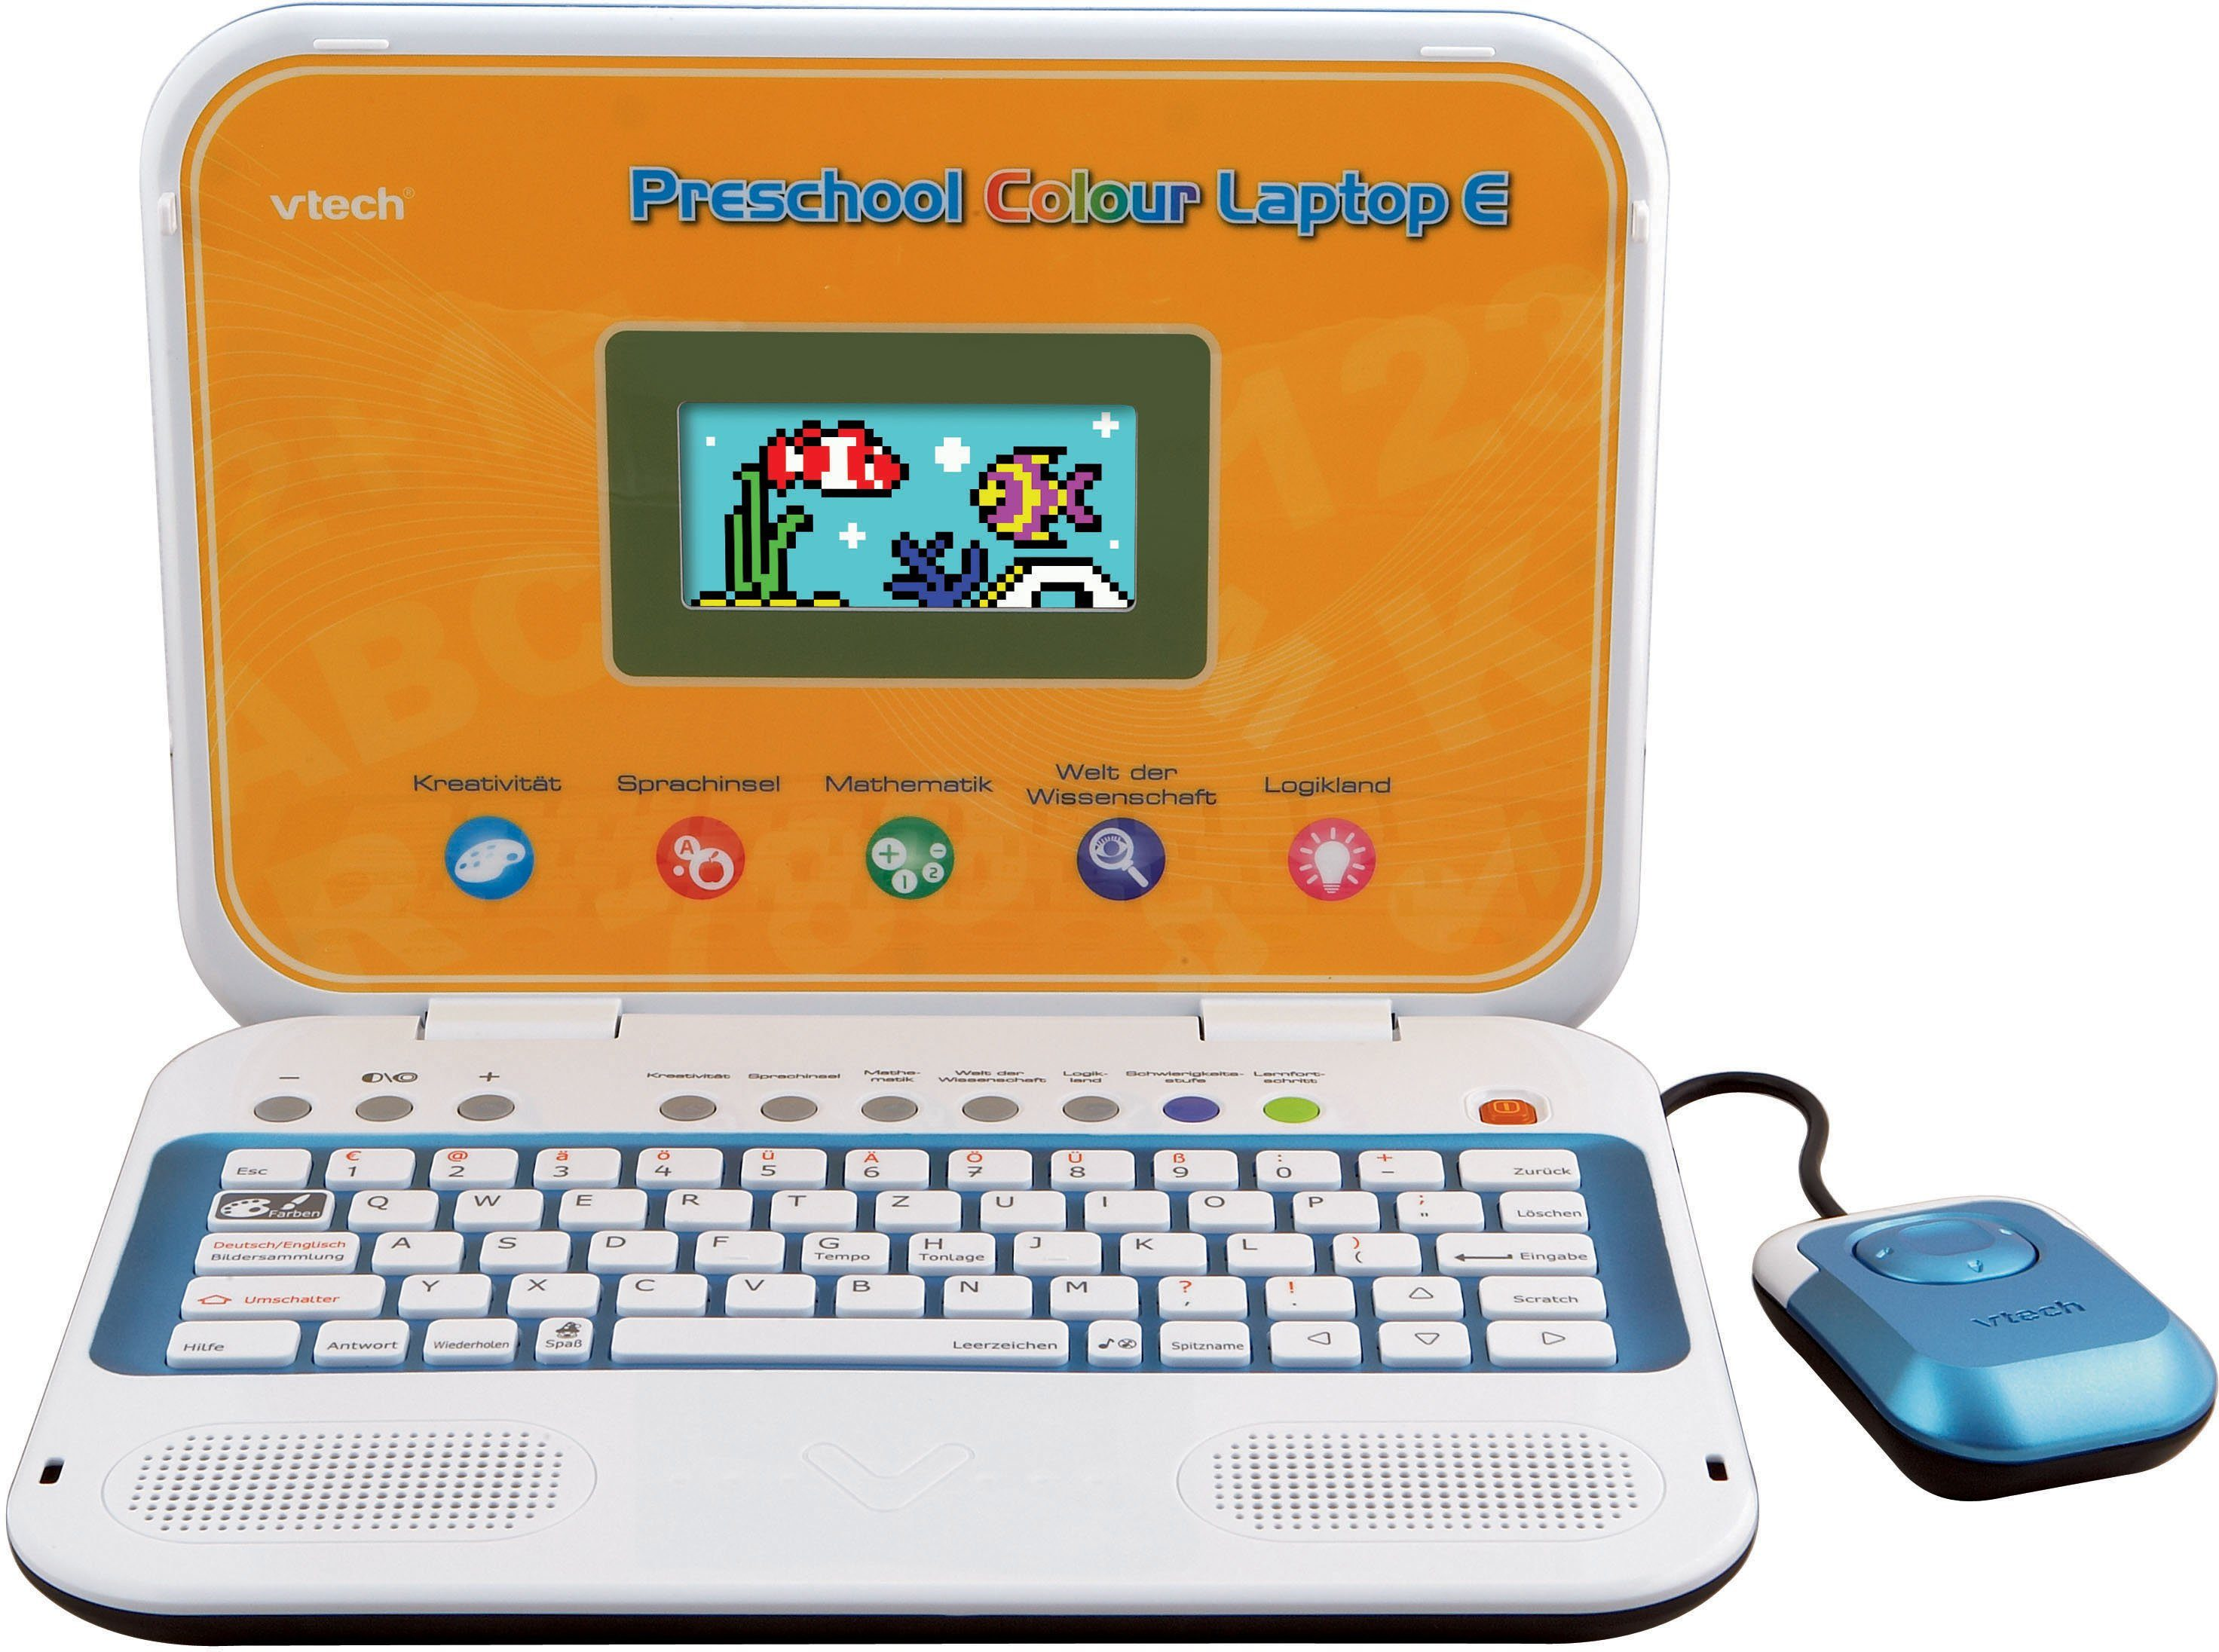 VTech Kinderlaptop mit Farbdisplay, »Ready Set School - Preschool Colour Laptop E«